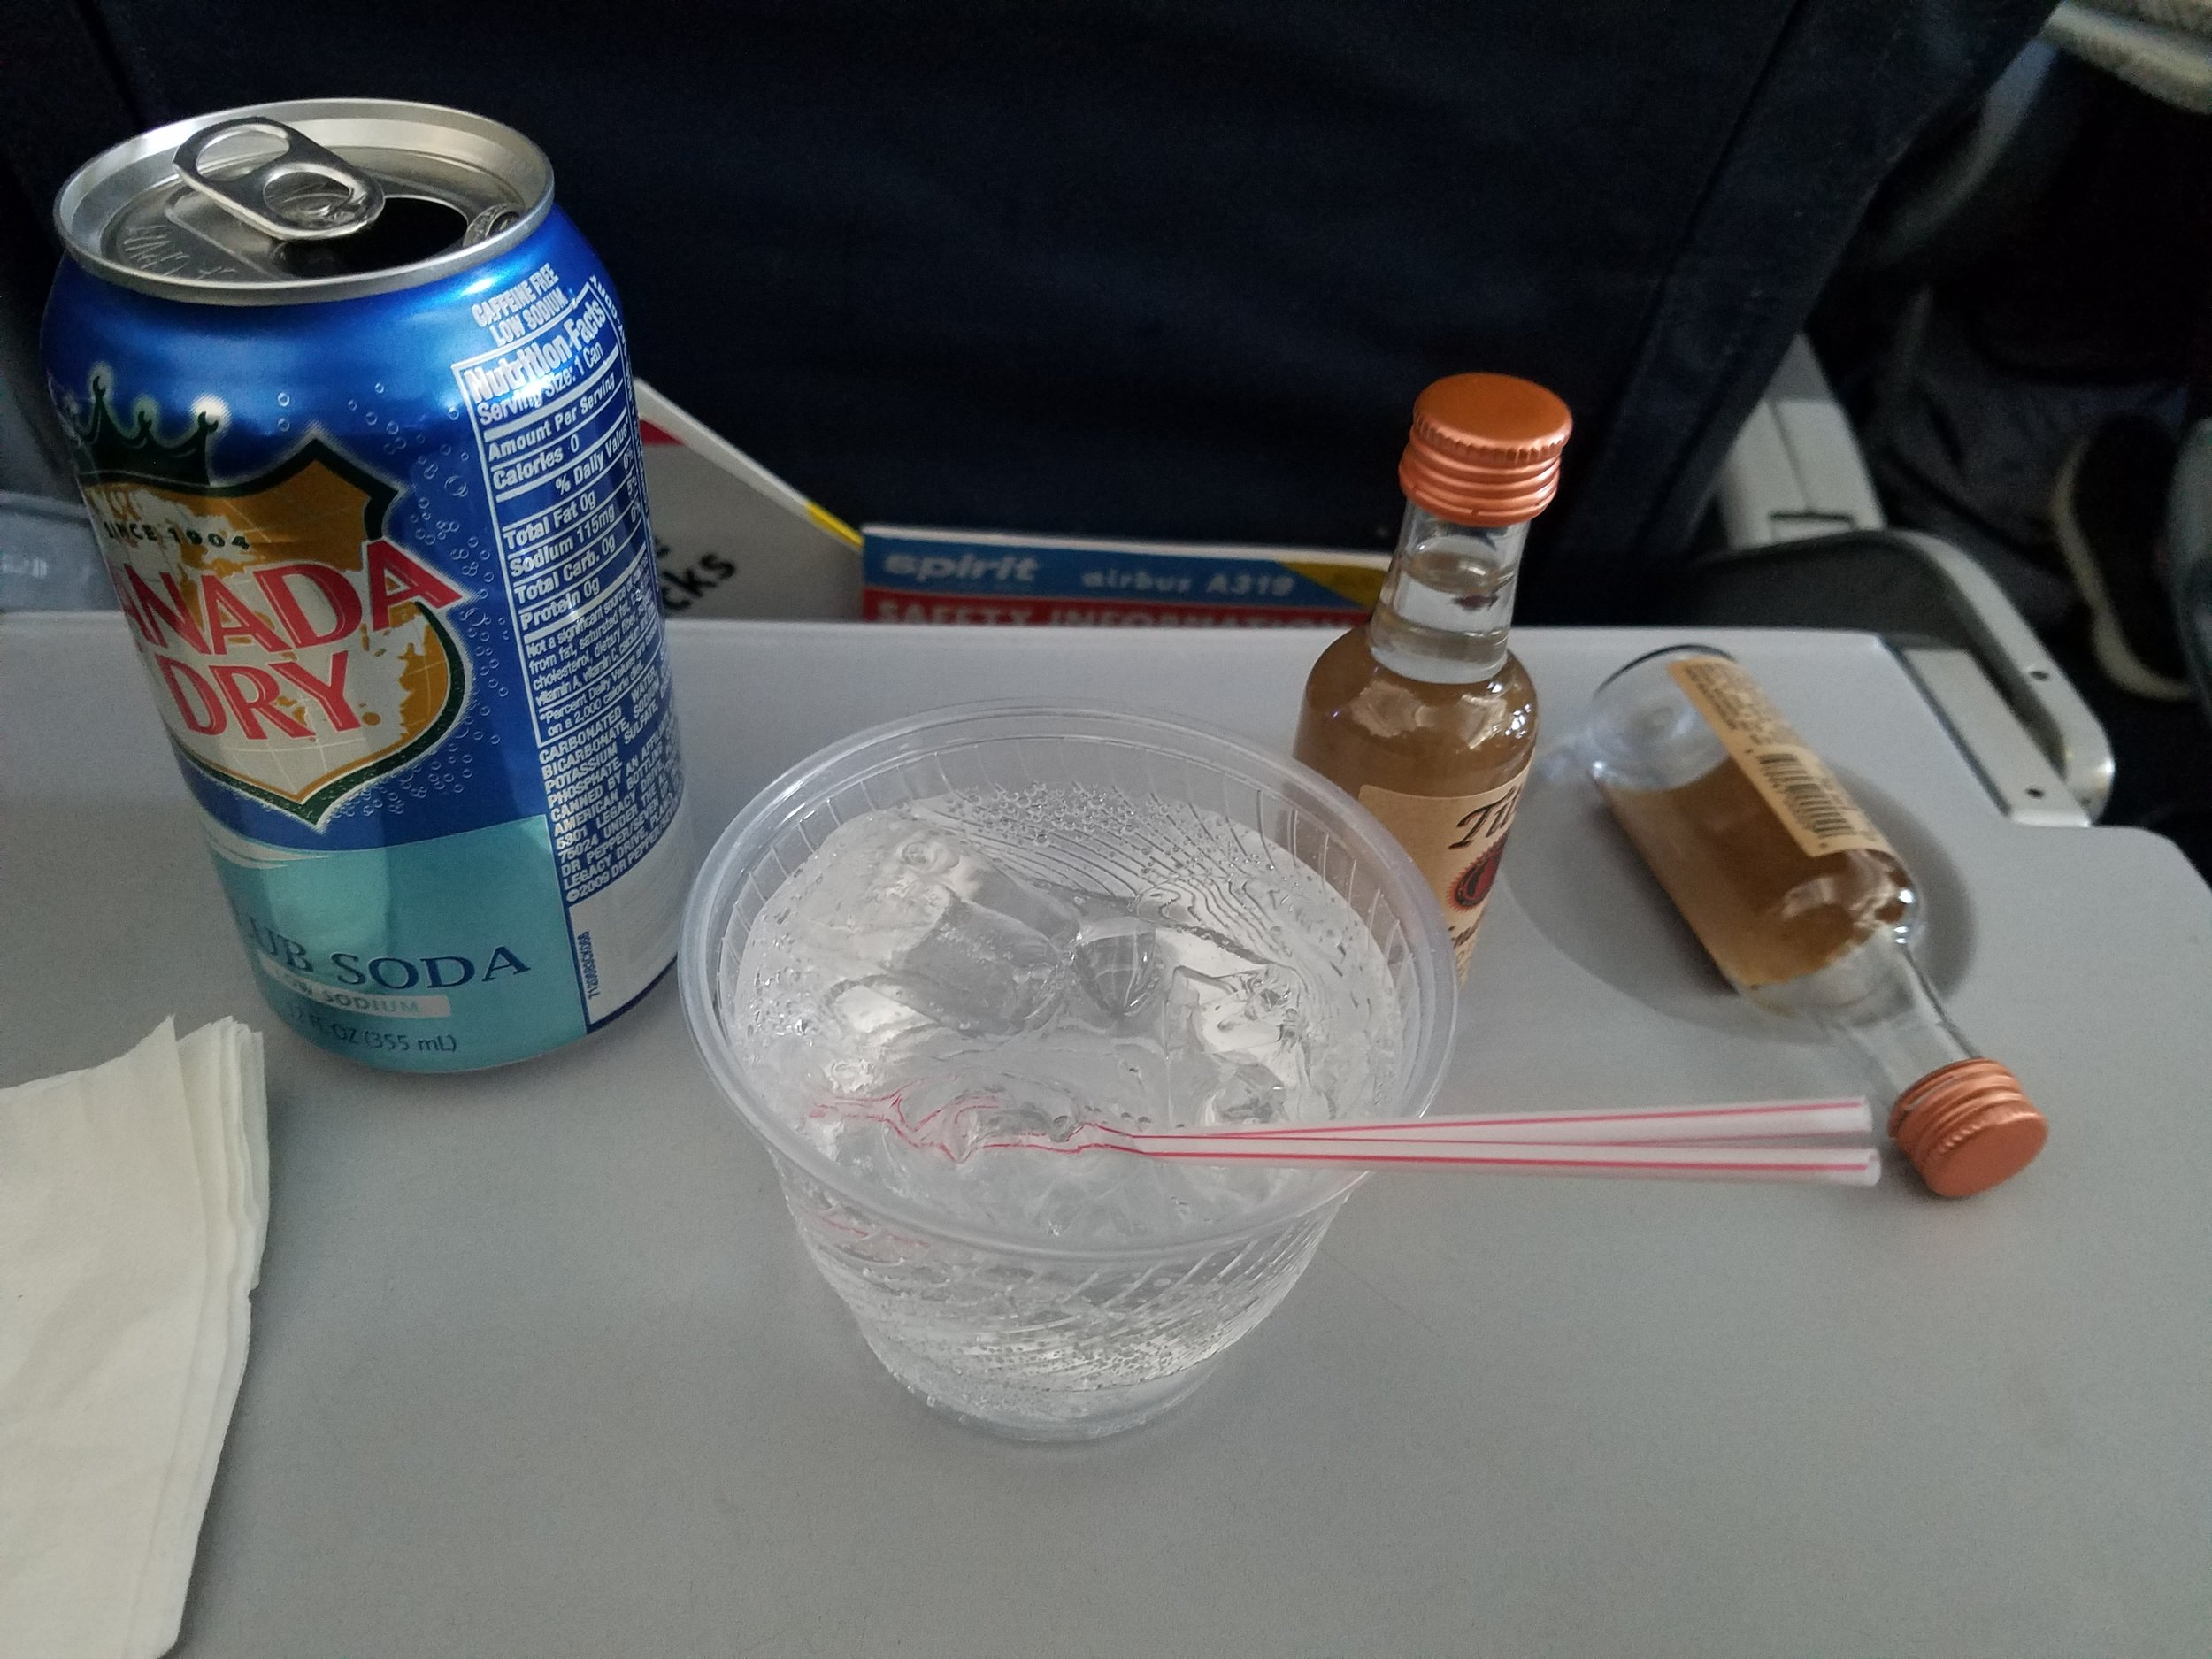 - If you saw that the woman ordered a vodka soda for the flight and assumed she was anxious about flying, you would be partially correct.Crashing is the last thing on her mind.Instead, avoiding a medical emergency while 30,000 feet in the air, getting her husband from this flight to their final destination in one piece, surviving the duration of the trip that is about to occur without needing the list of hospitals in her purse or having to use the trip insurance policy they don't travel without - those are the things consuming her mind.You see, being a caregiver